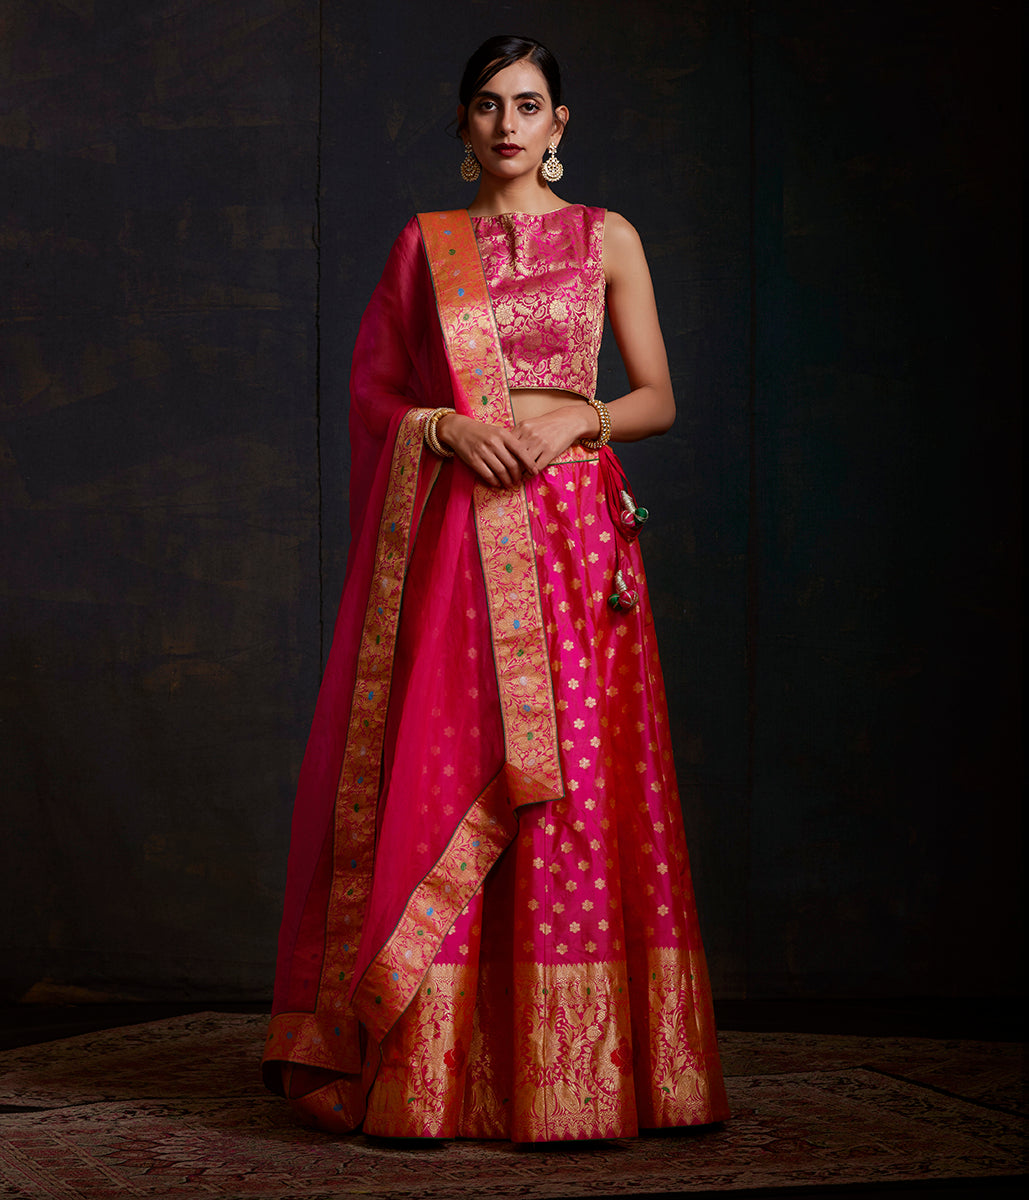 Handwoven Banarasi Katan Silk Lehenga in Hot pink and orange dual tone